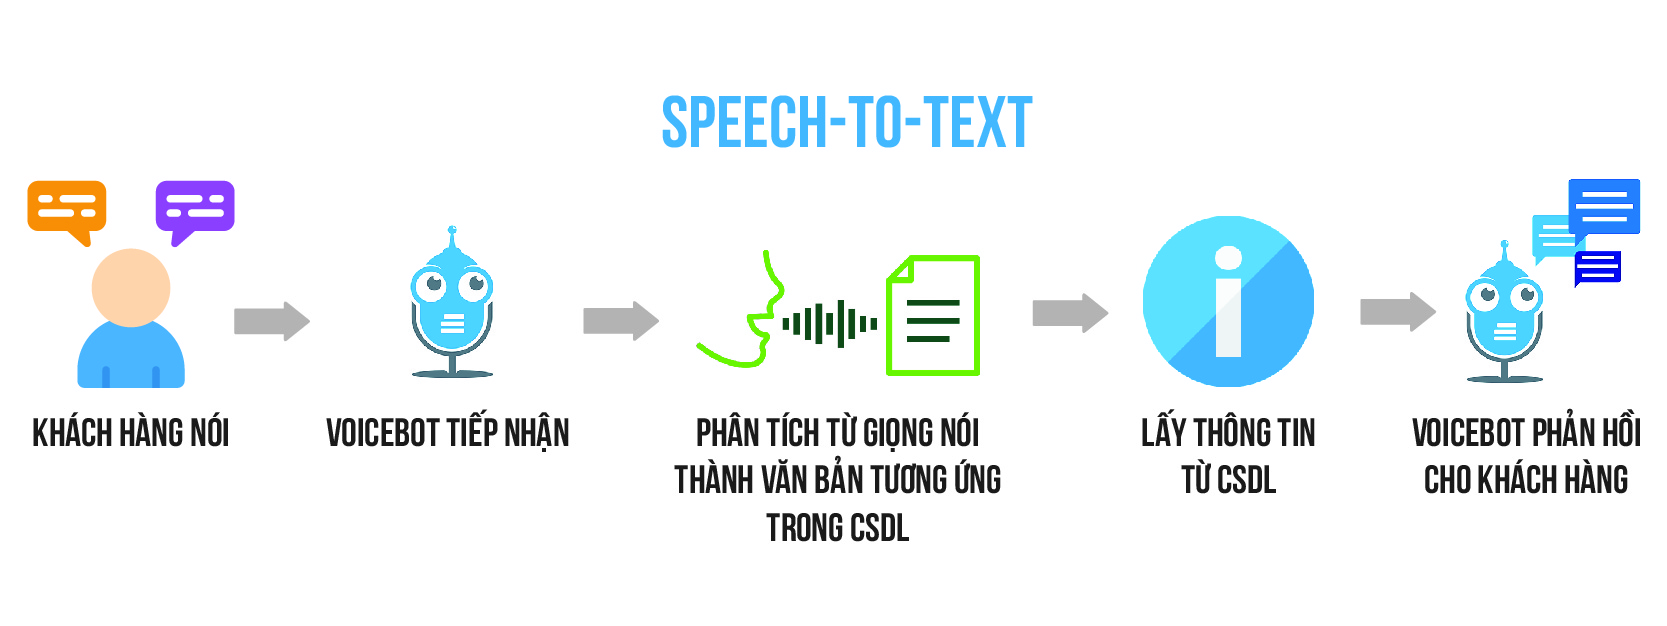 nguyen ly speech to text